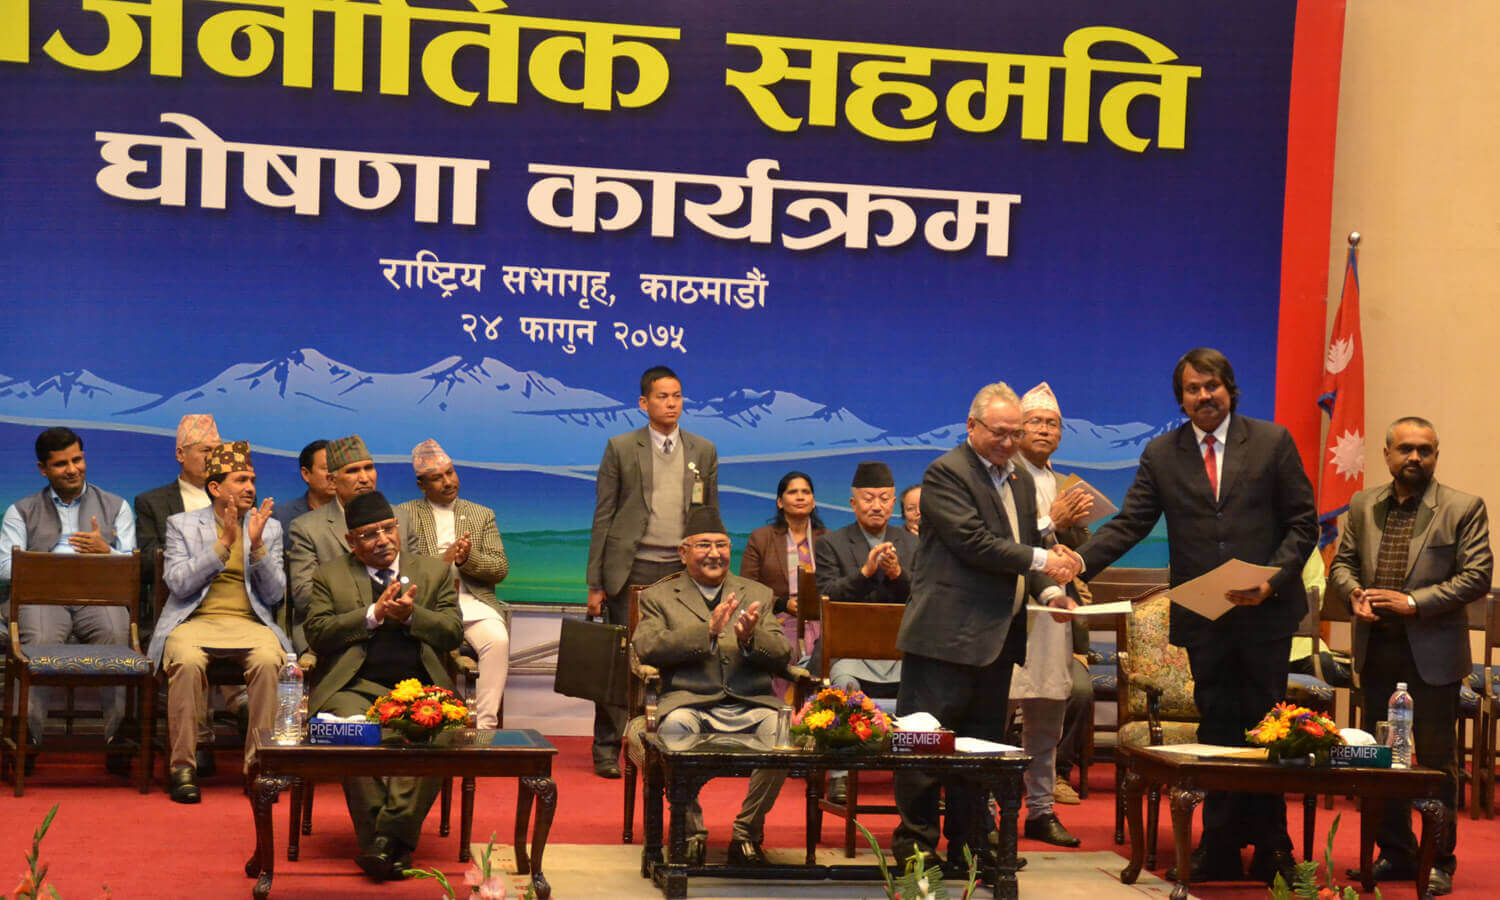 CK Raut agreement with the government